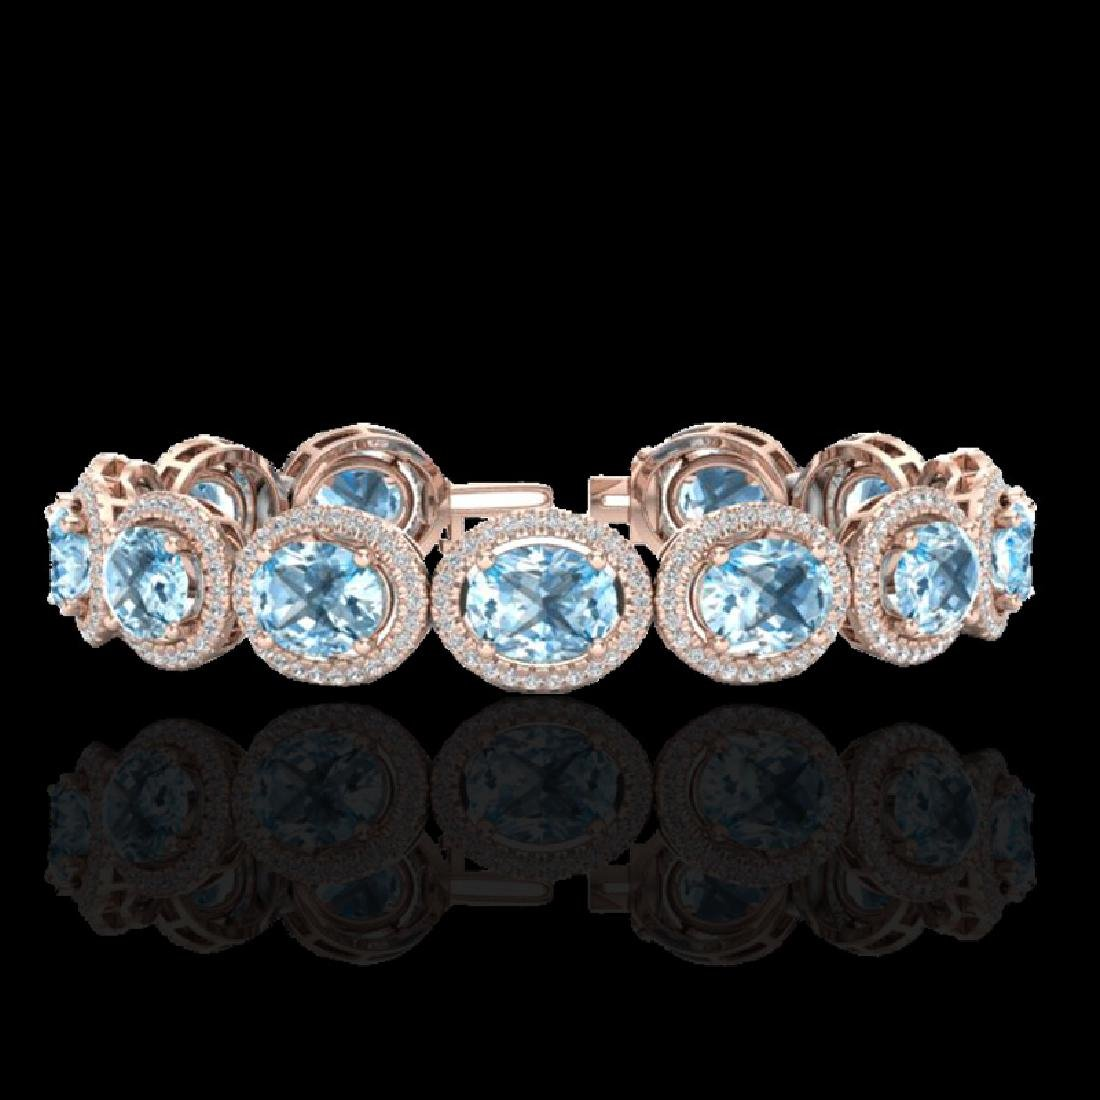 30 CTW Sky Blue Topaz & Micro Pave VS/SI Diamond